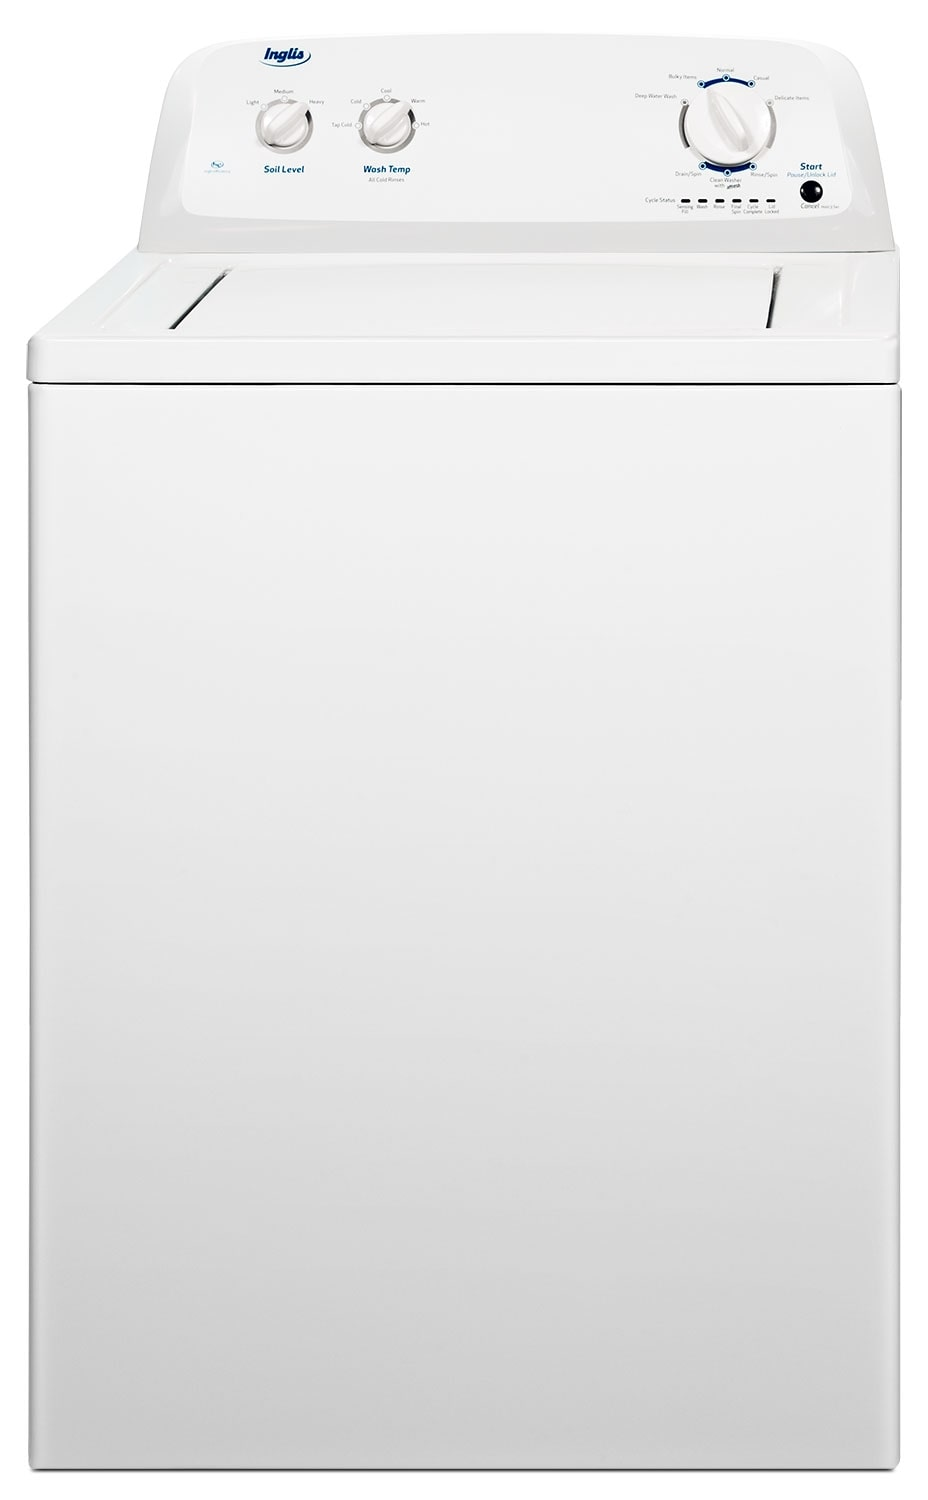 Washers and Dryers - Inglis 4.1 Cu. Ft. Top-Load Washer - White